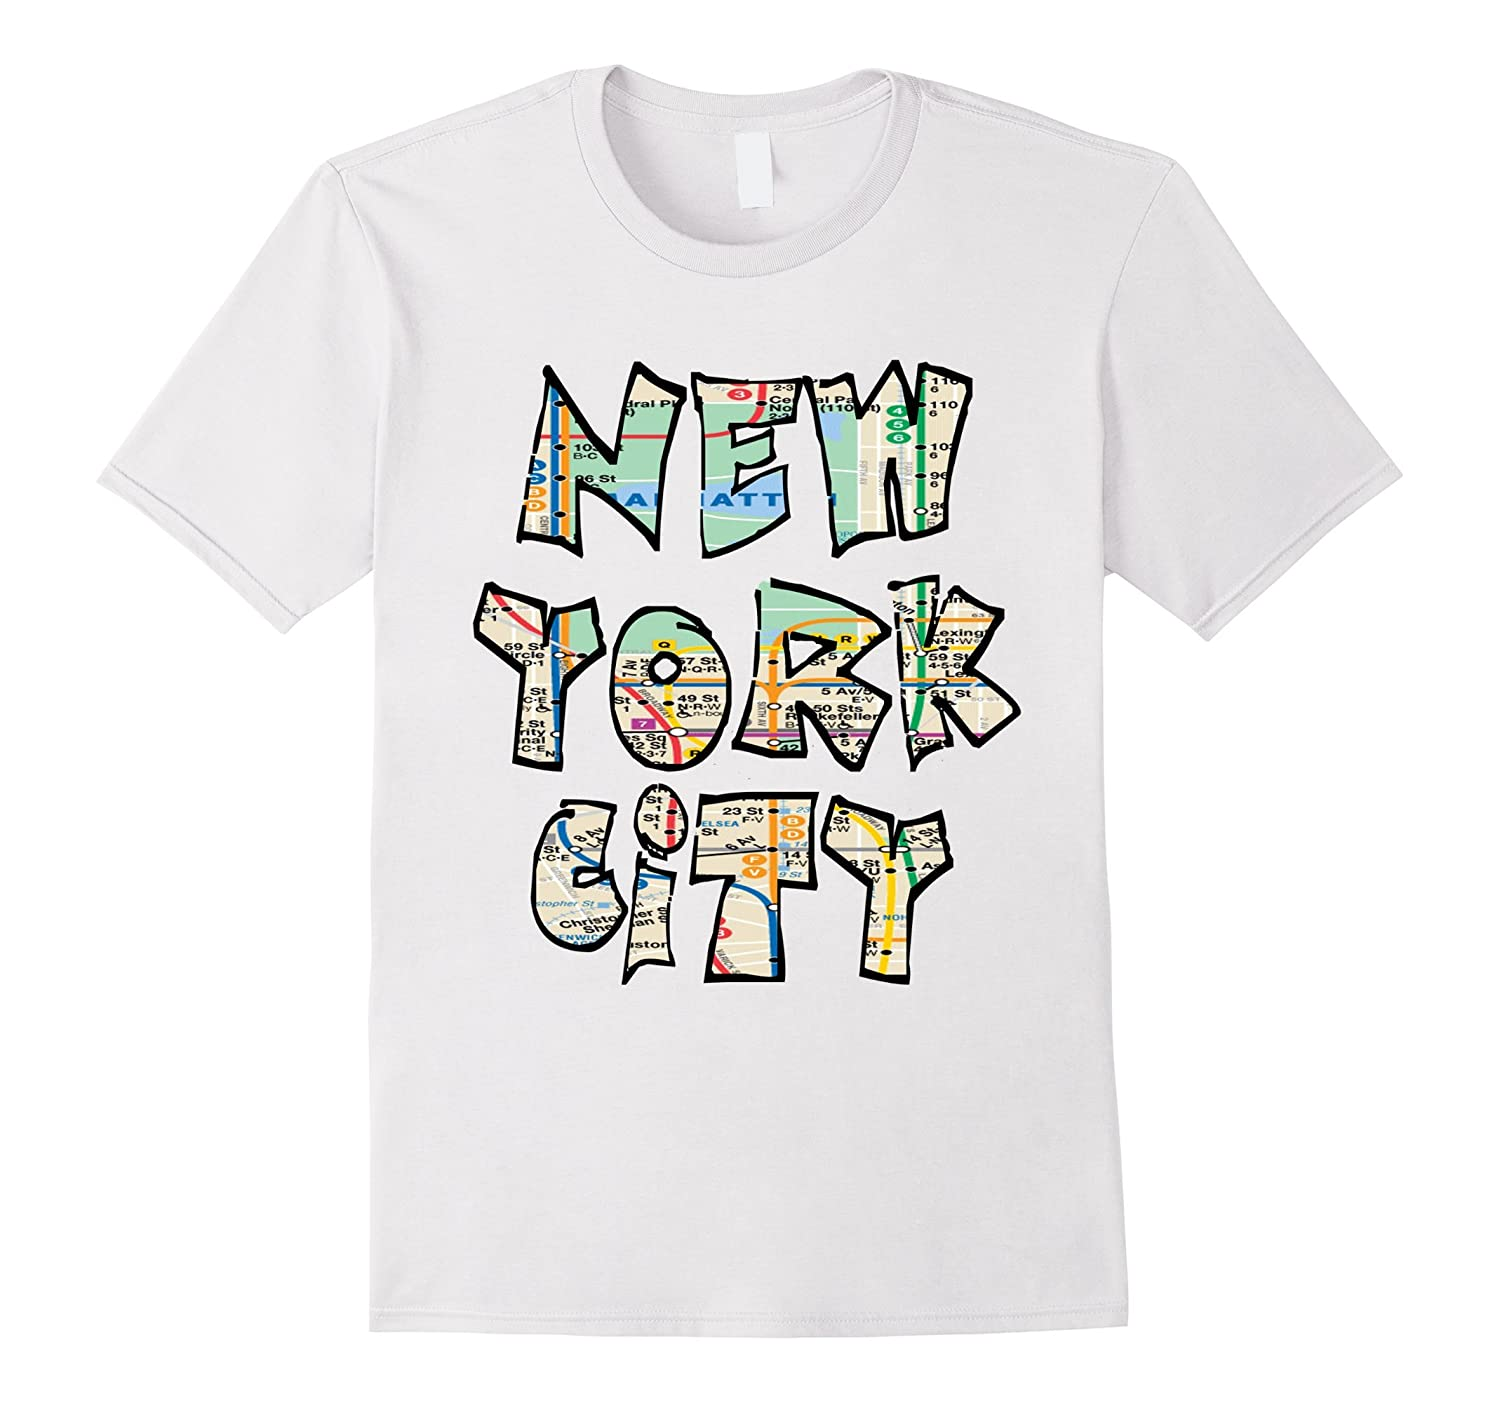 Nyc Subway Map T Shirt.New York City Nyc Ny Subway Map T Tee Shirt